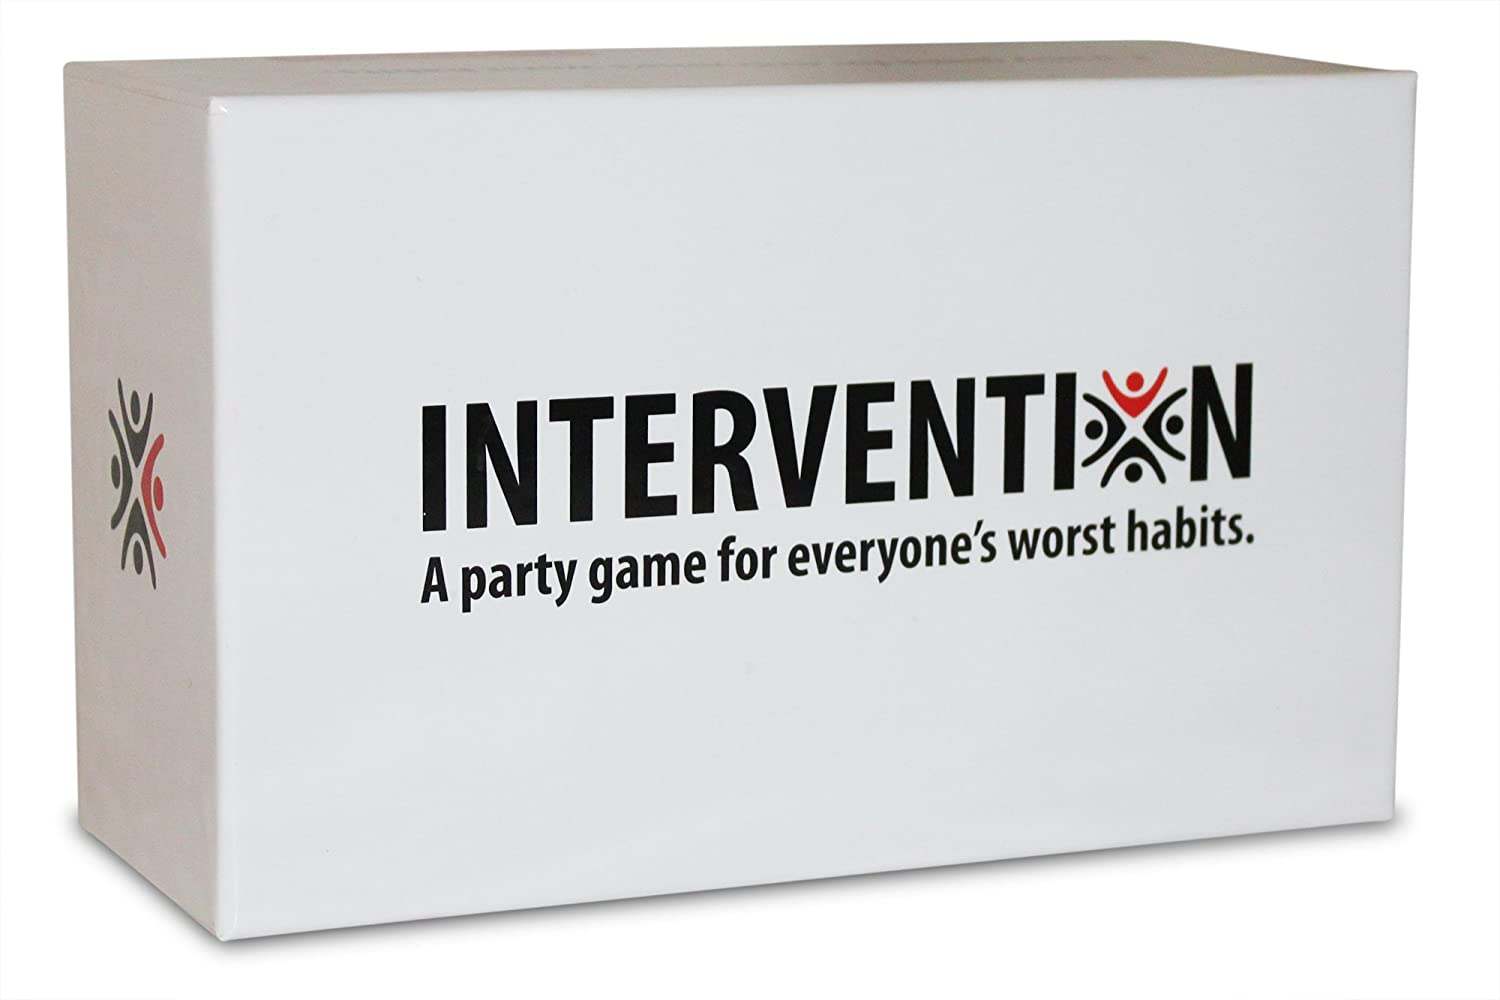 Amazon.com: Intervention - A Party Game for Everyone\'s Worst Habits ...